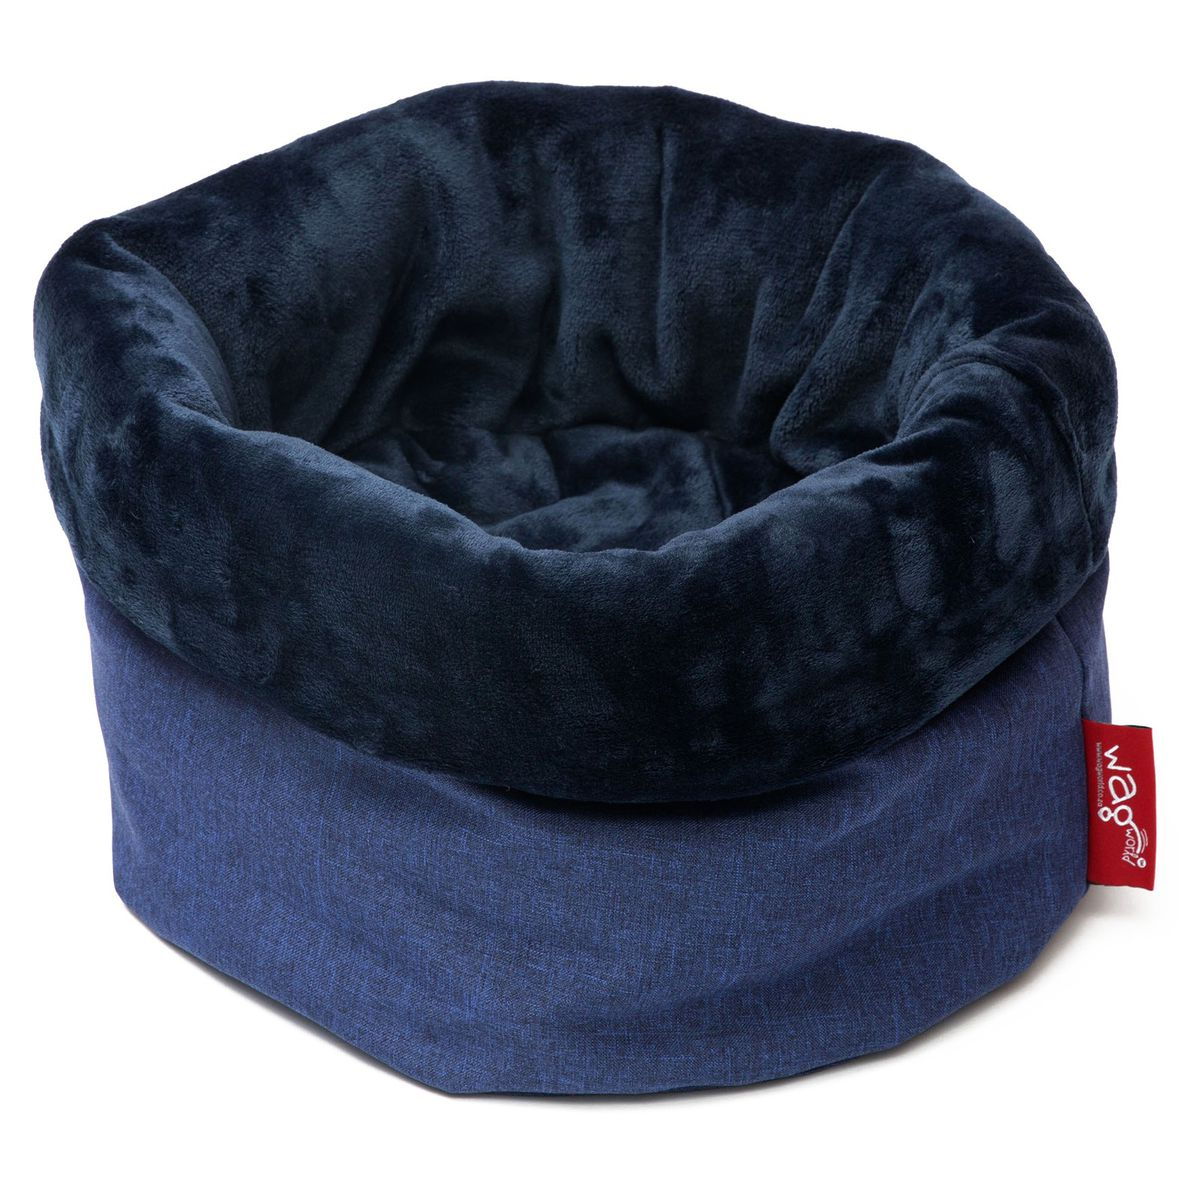 Wagworld Nap Sack Bed for small dogs / cats- Blue